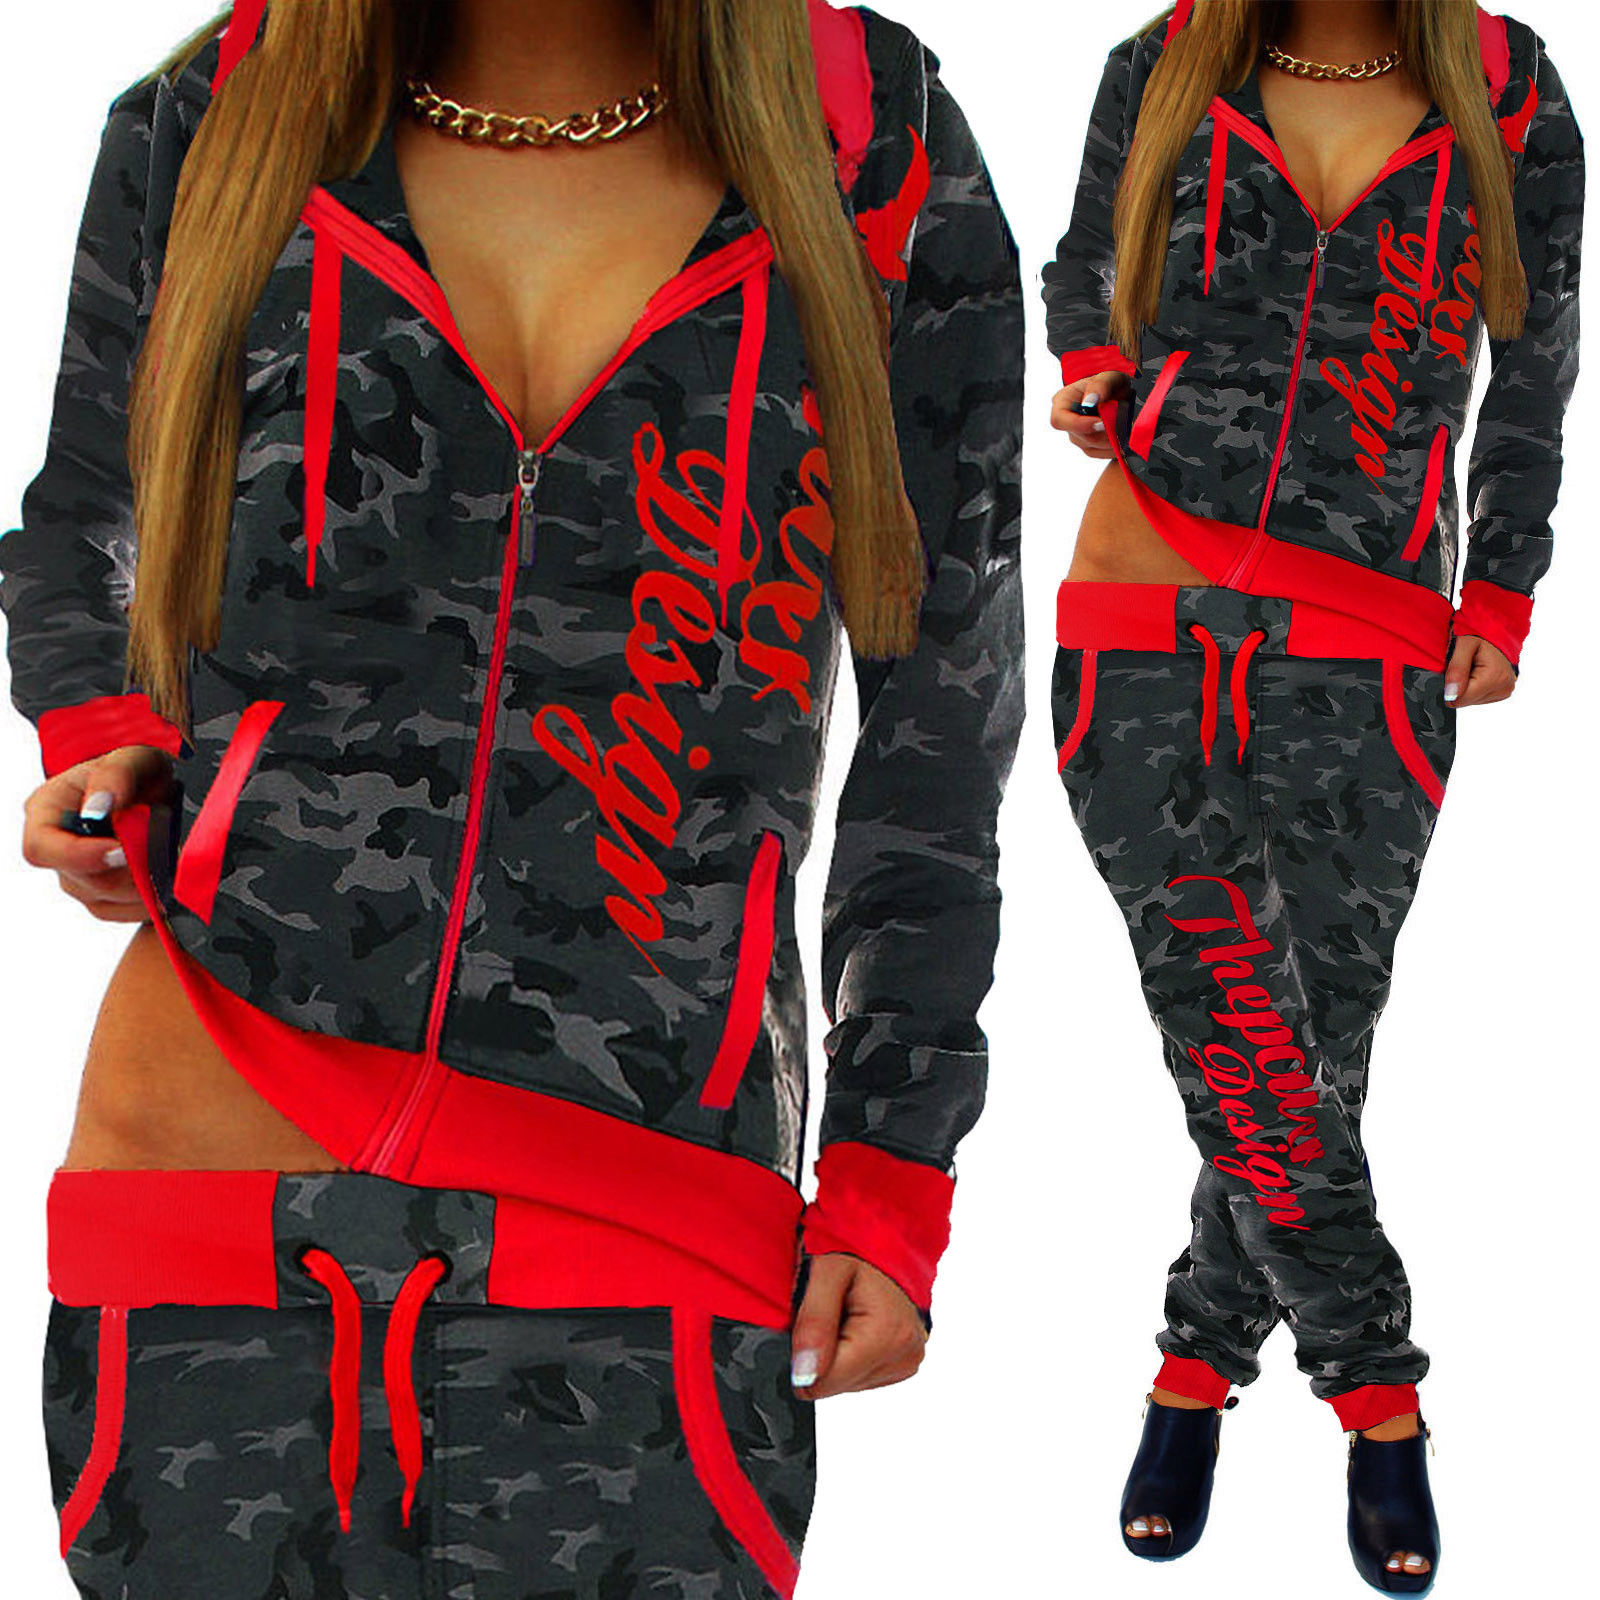 ZOGAA spring new 2 piece set women fashion clothing women 2019 Casual camouflage street style sweatsuits for women Plus S 3XL in Women 39 s Sets from Women 39 s Clothing